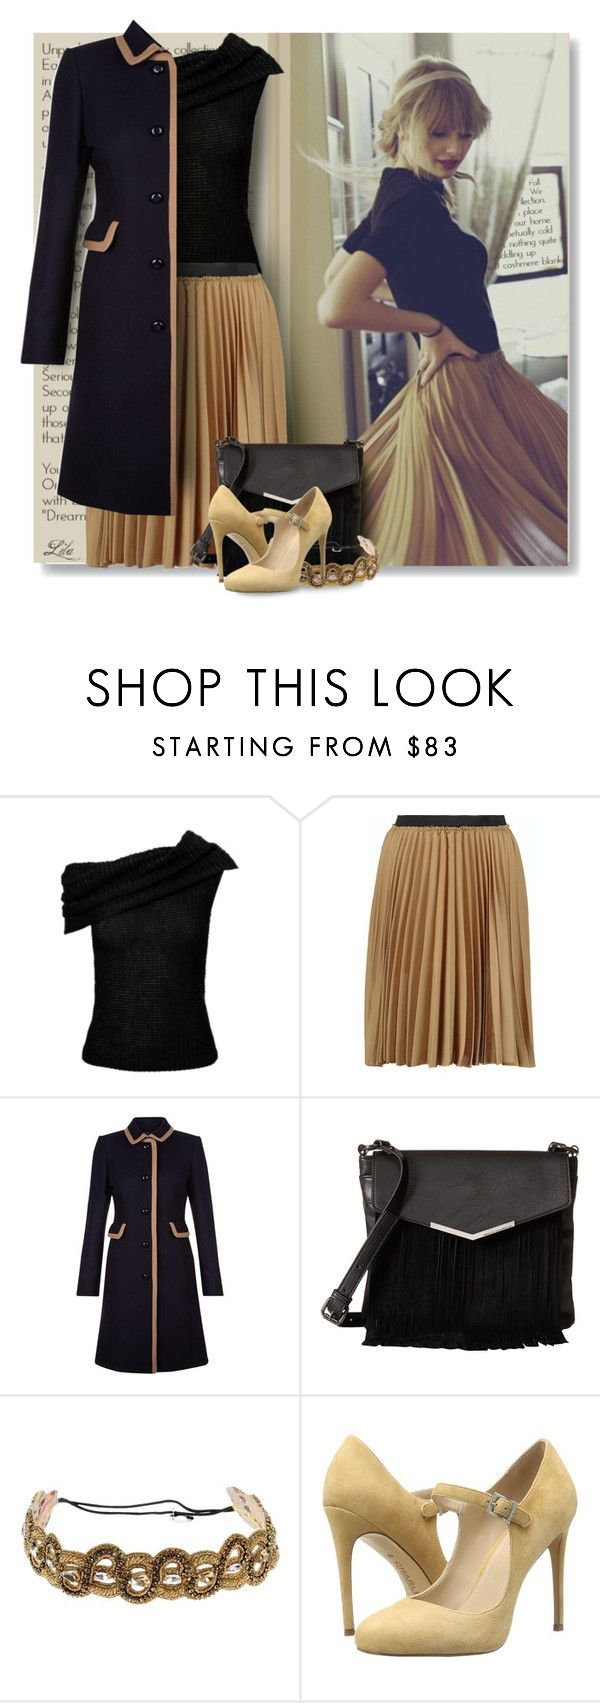 """""""Sweet Mini Handbags"""" by breathing-style ❤ liked on Polyvore featuring Roland Mouret, Enza Costa, Hobbs, French Connection, Deepa Gurnani and Charles by Charles David"""